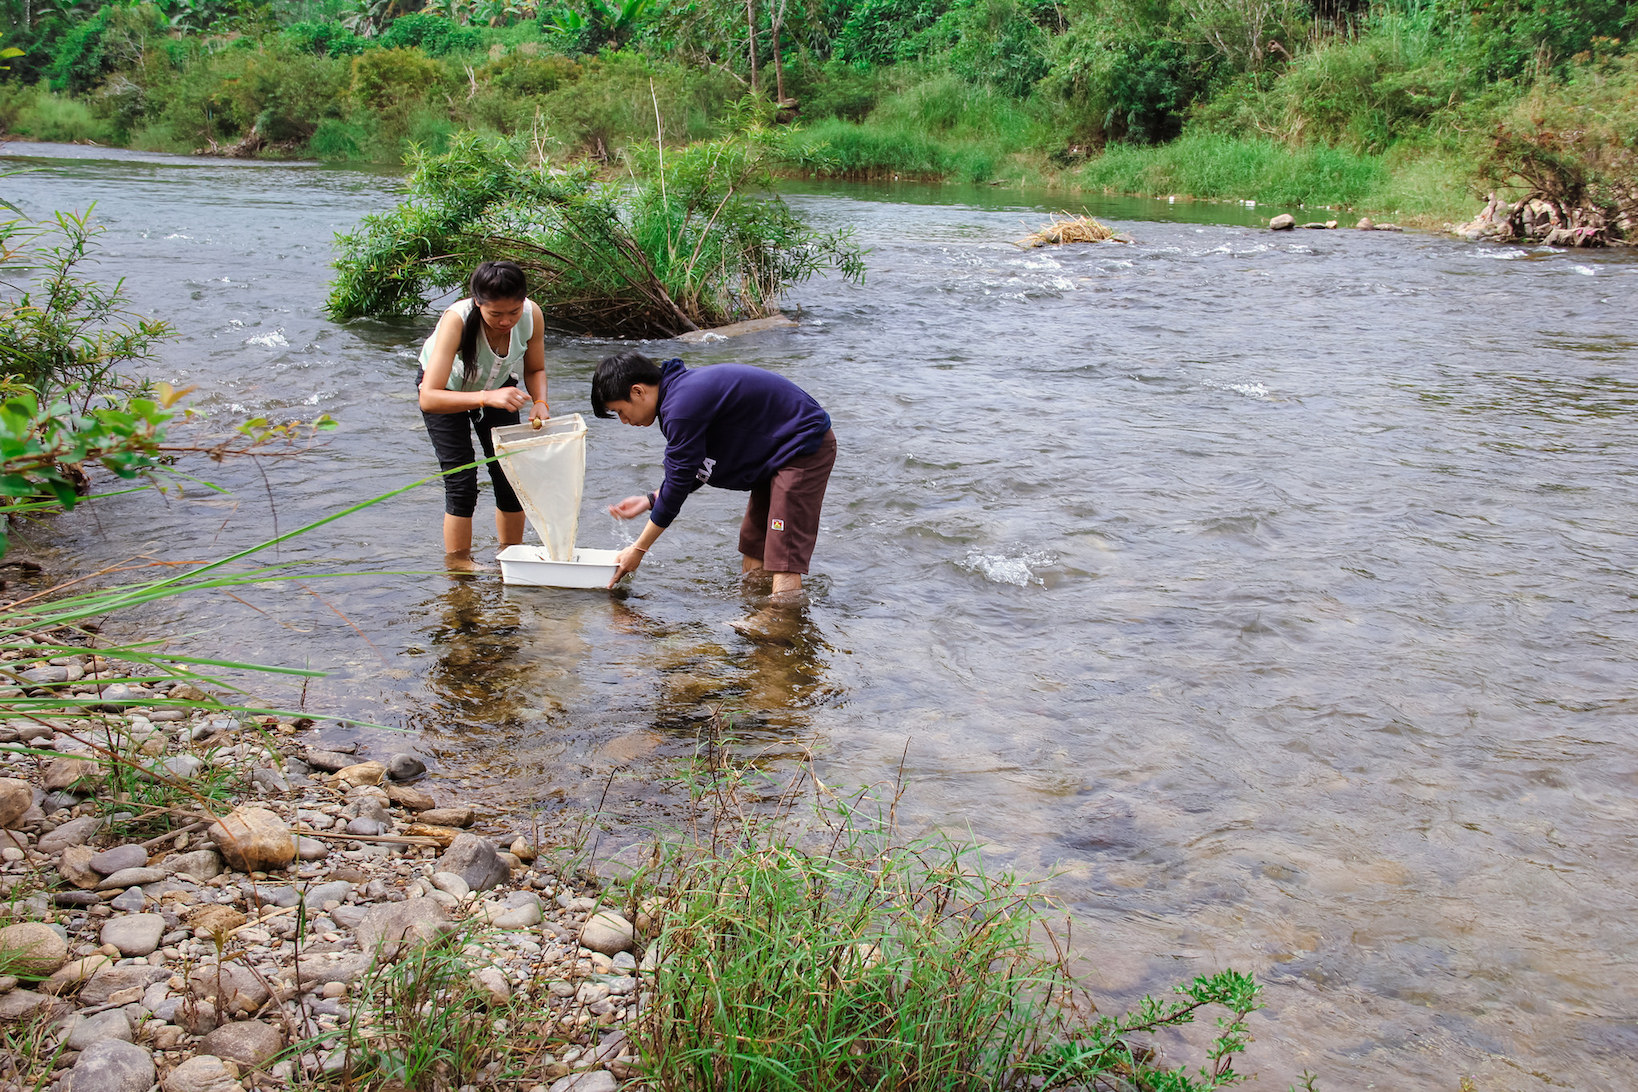 Volunteers collecting macroinvertebrates in Laos